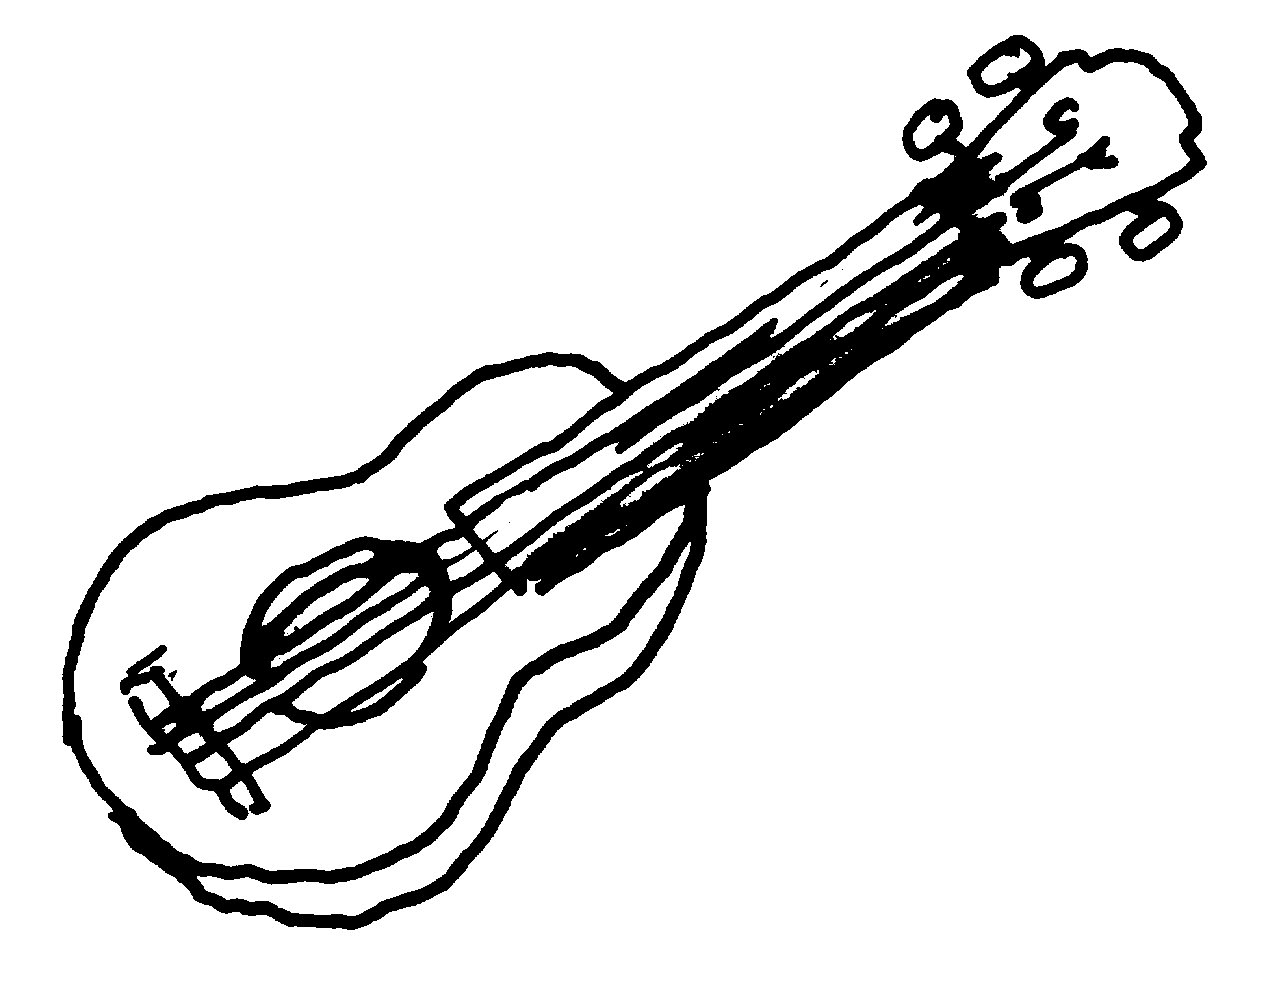 Free Musical Instruments Clipart, Download Free Clip Art.